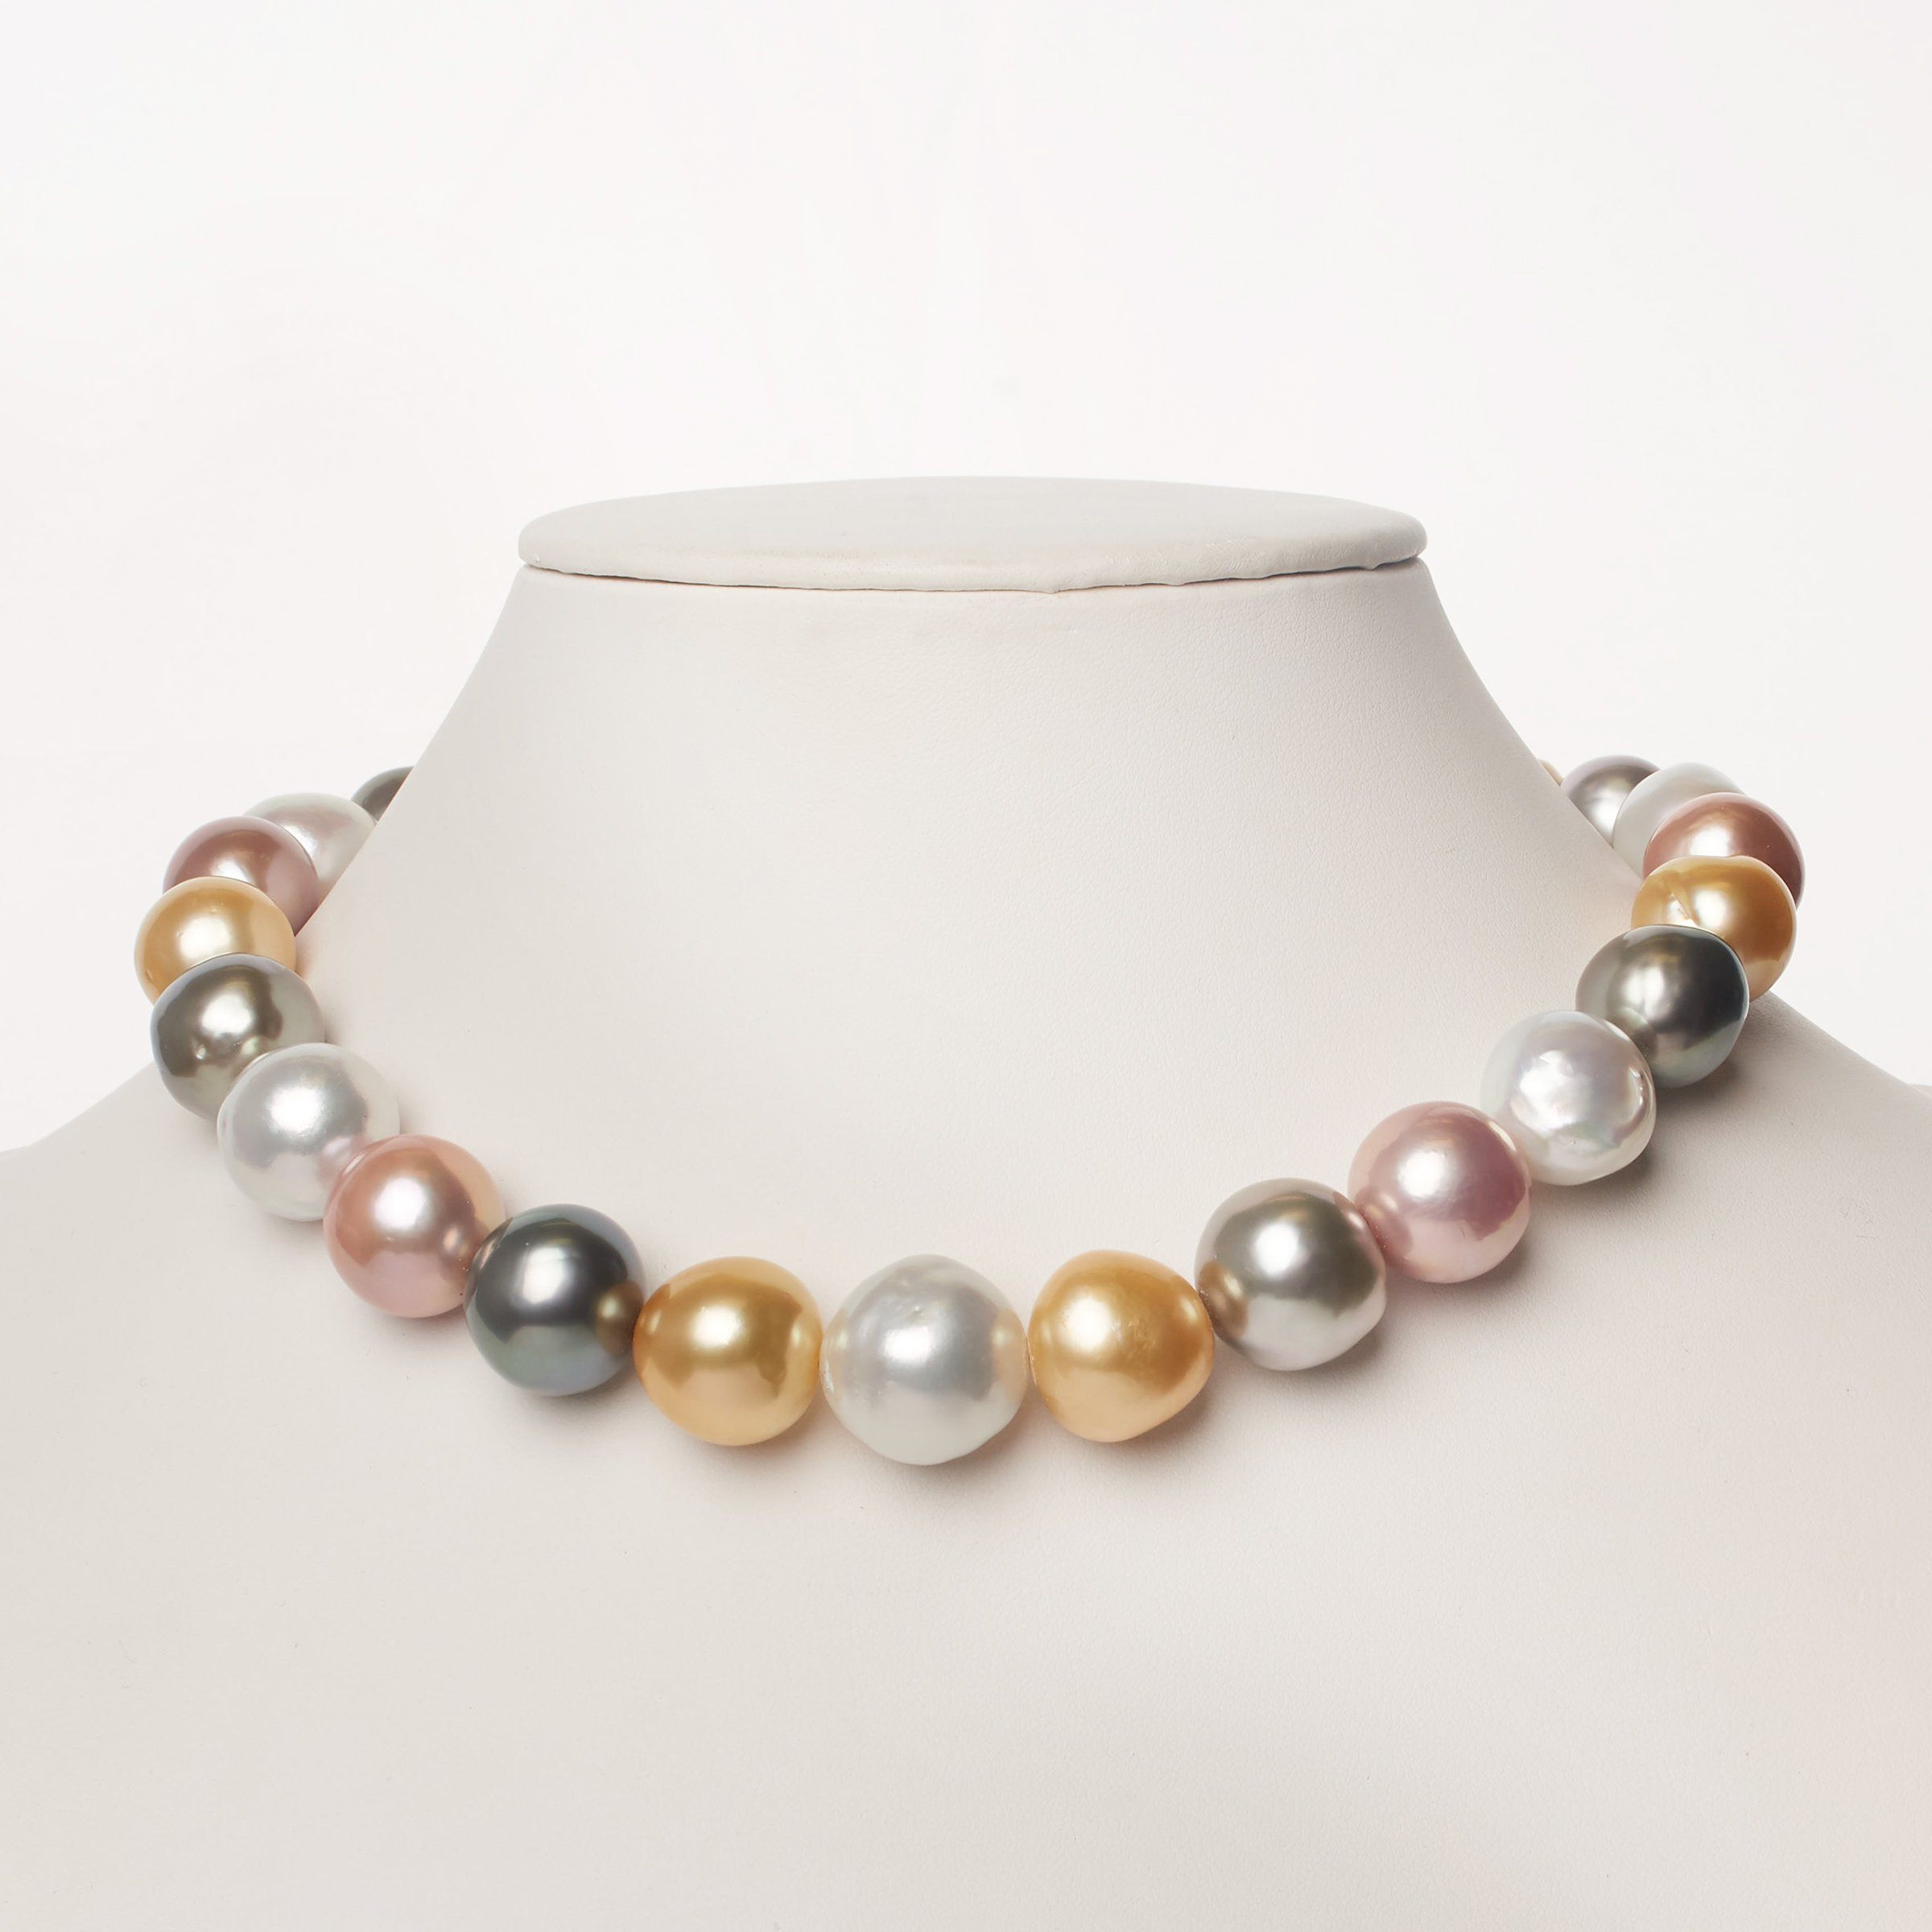 15.2-18.9 mm AA+/AAA Multicolored Baroque Pearl Necklace